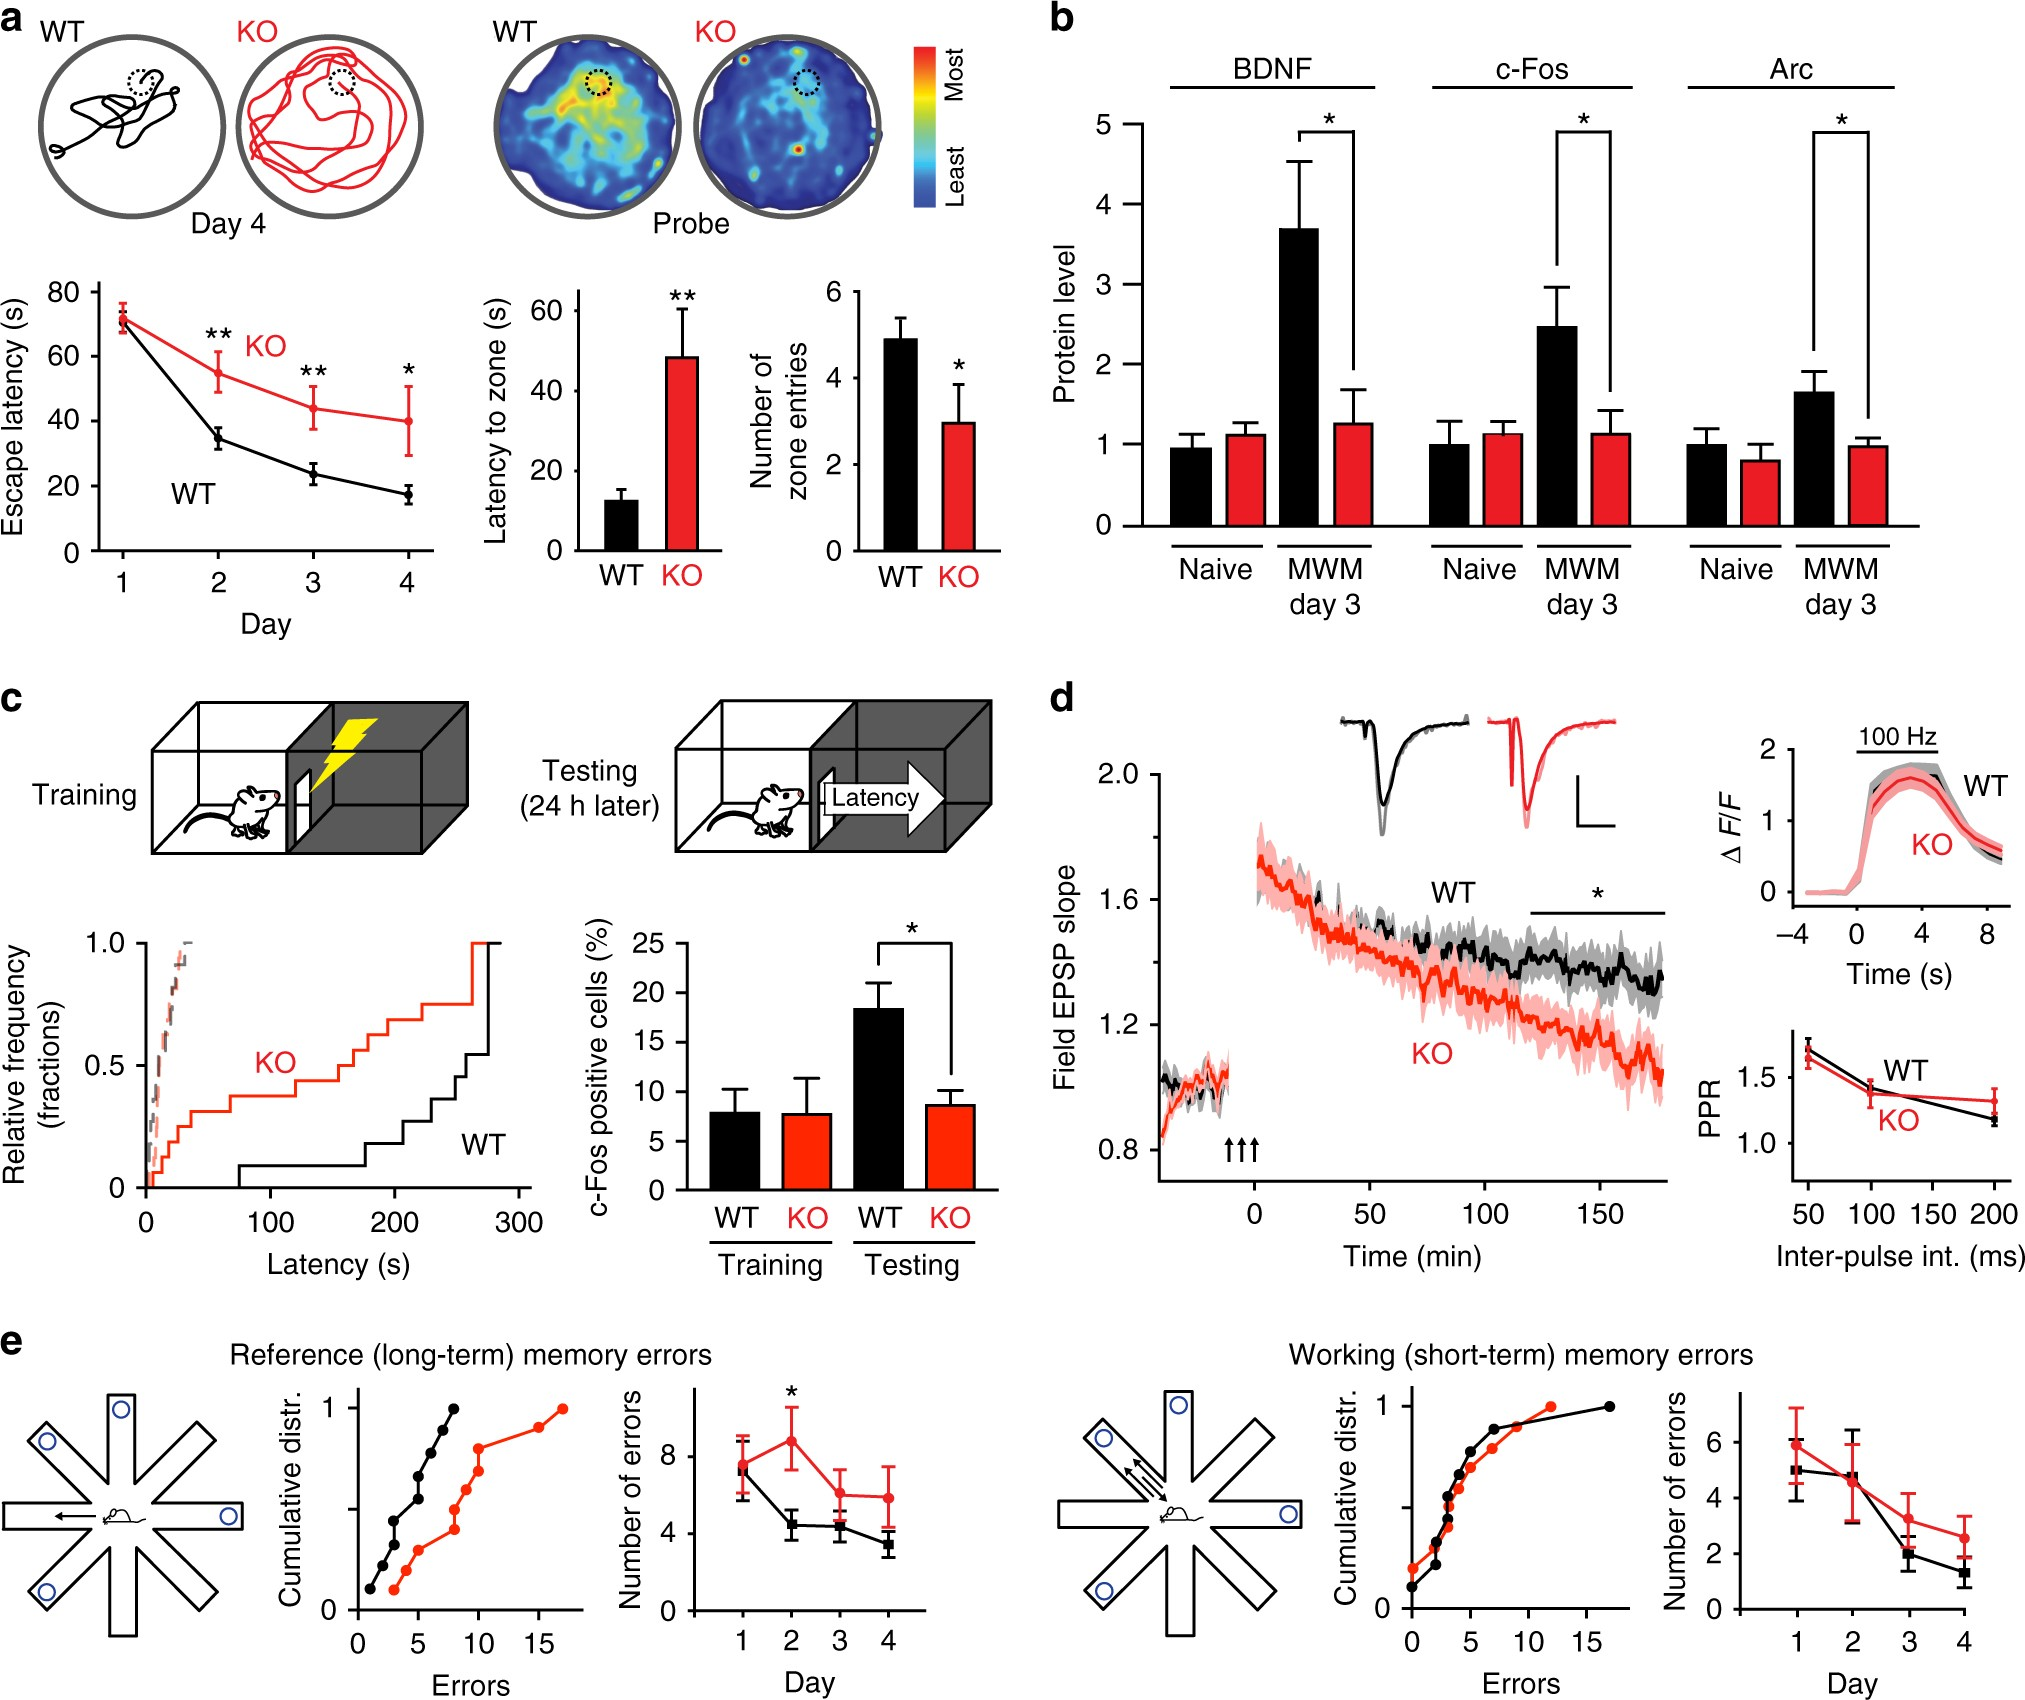 Calmodulin Shuttling Mediates Cytonuclear Signaling To Trigger Snap Circuits Pro 500in1 Sc500 S With Computer Inteface Experience Dependent Transcription And Memory Nature Communications